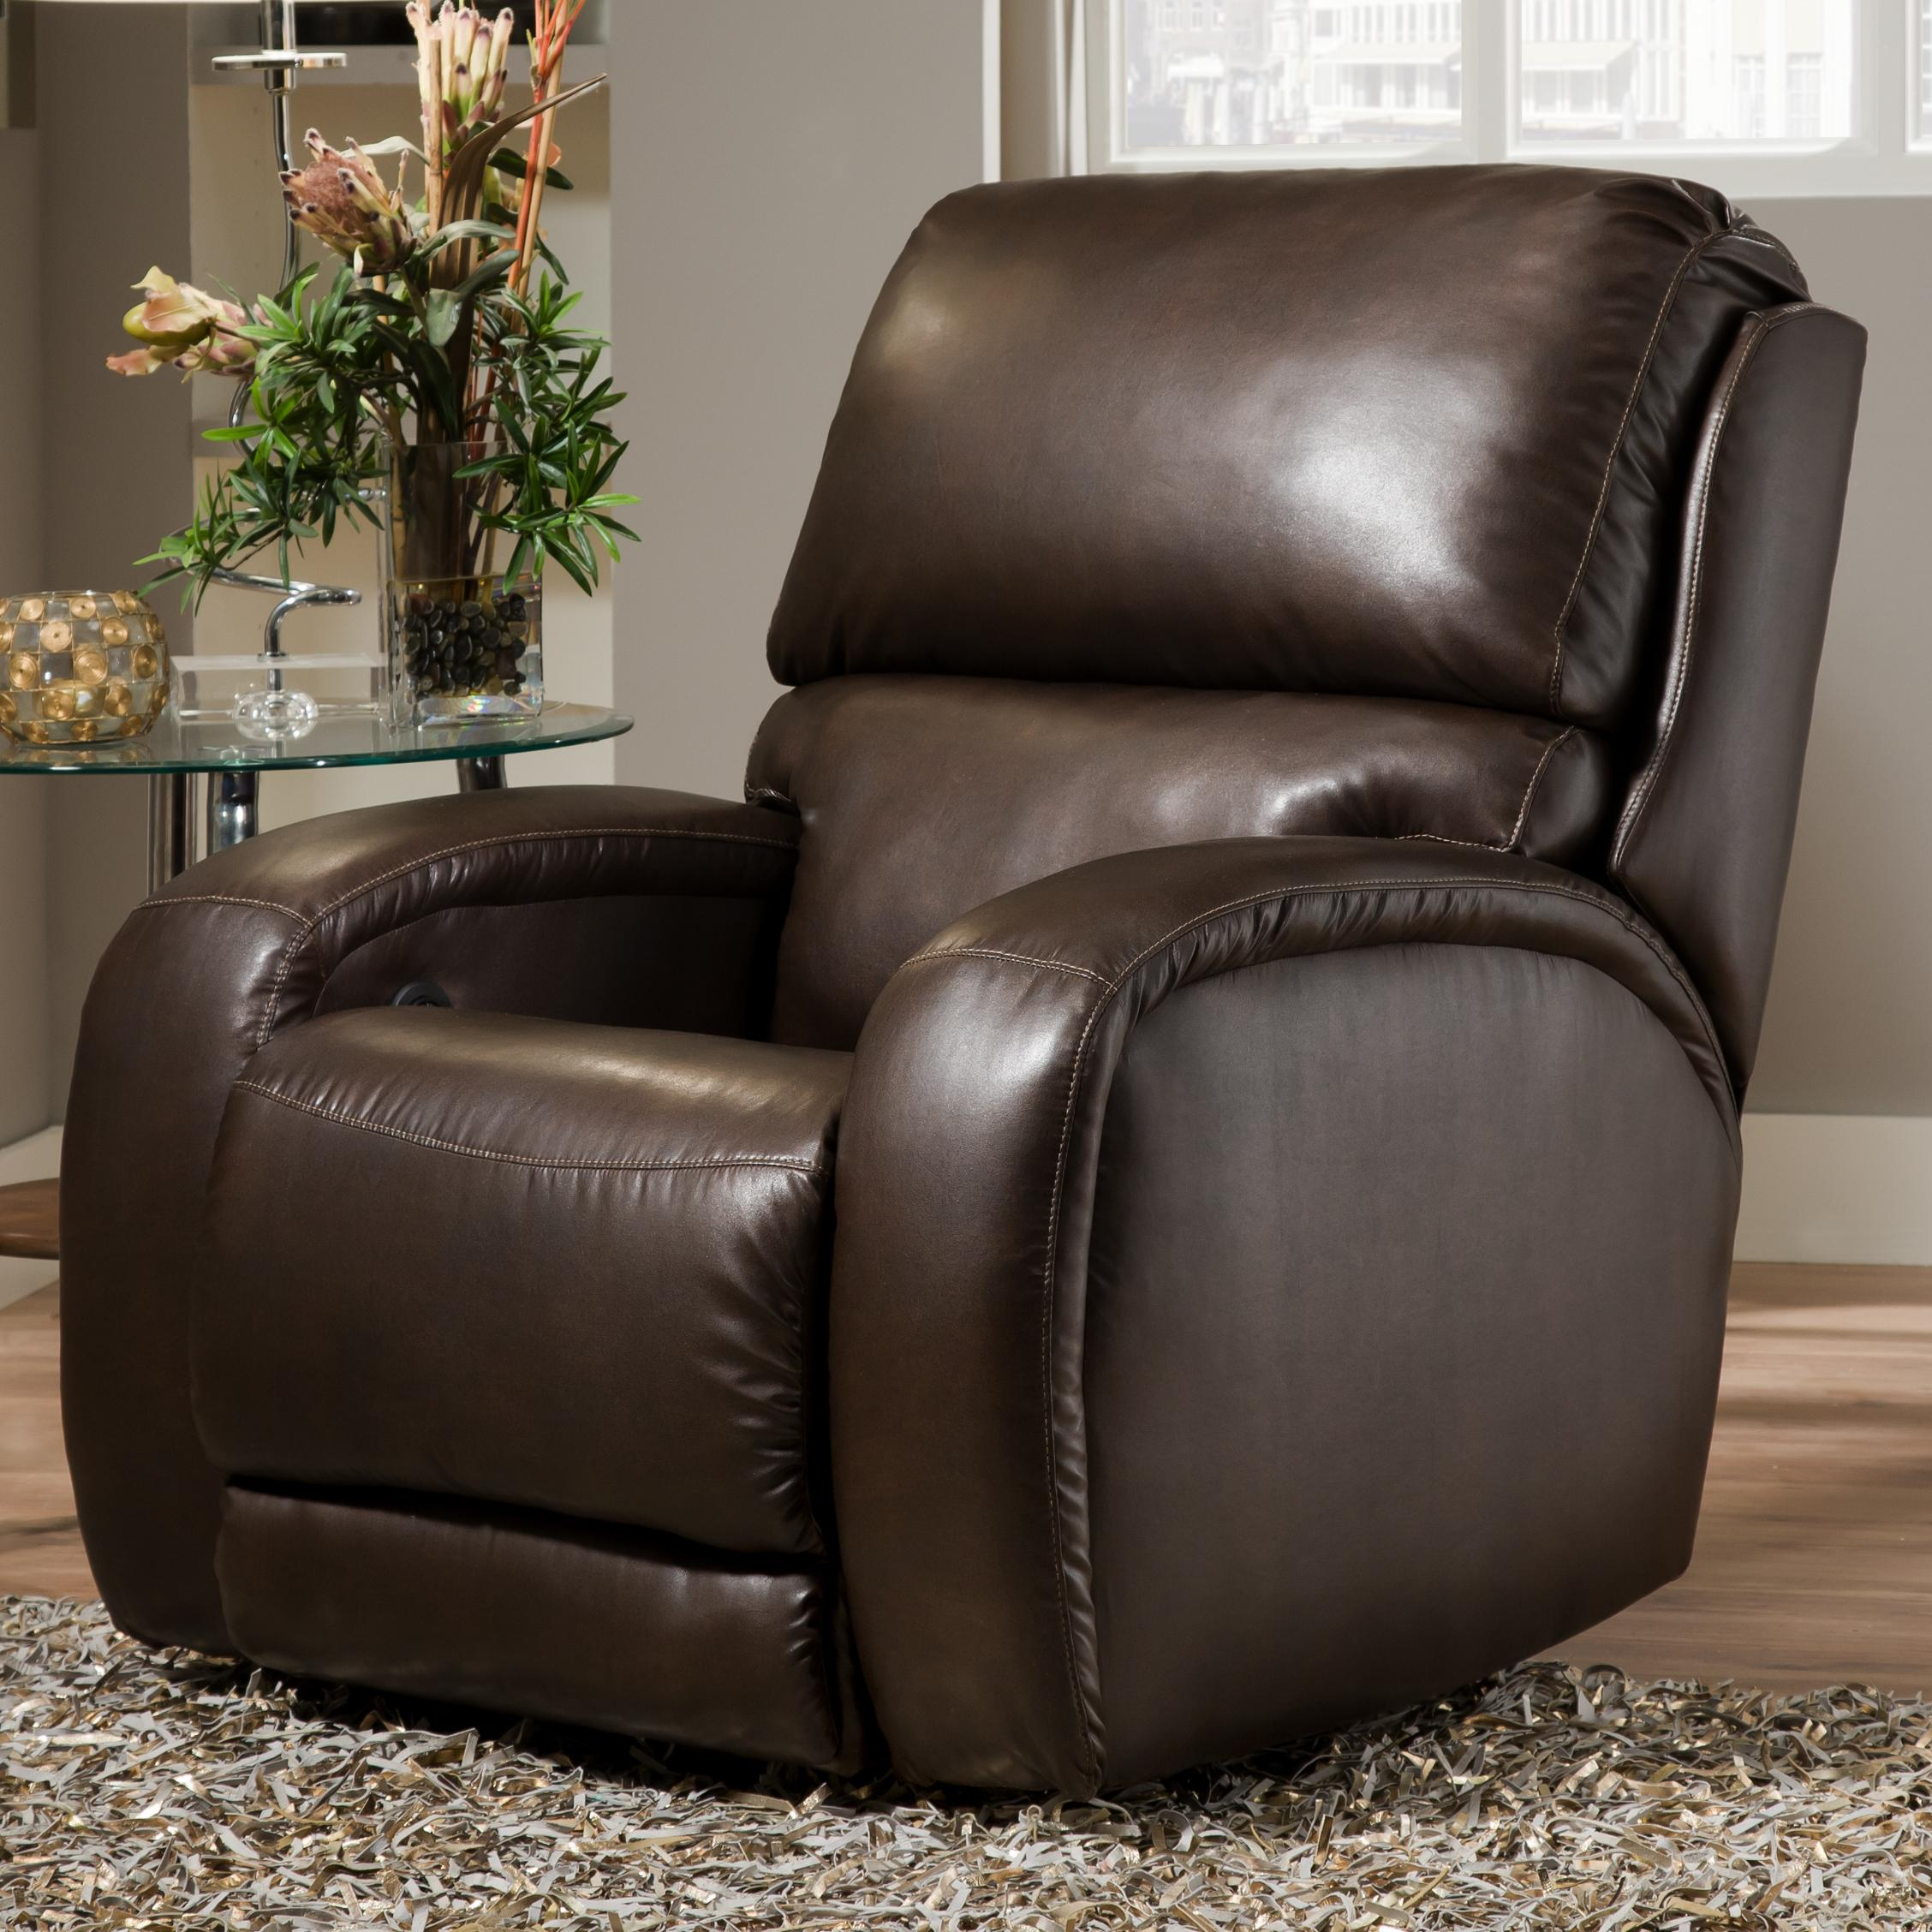 Fandango Power Layflat Lift Recliner by Southern Motion at Westrich Furniture & Appliances